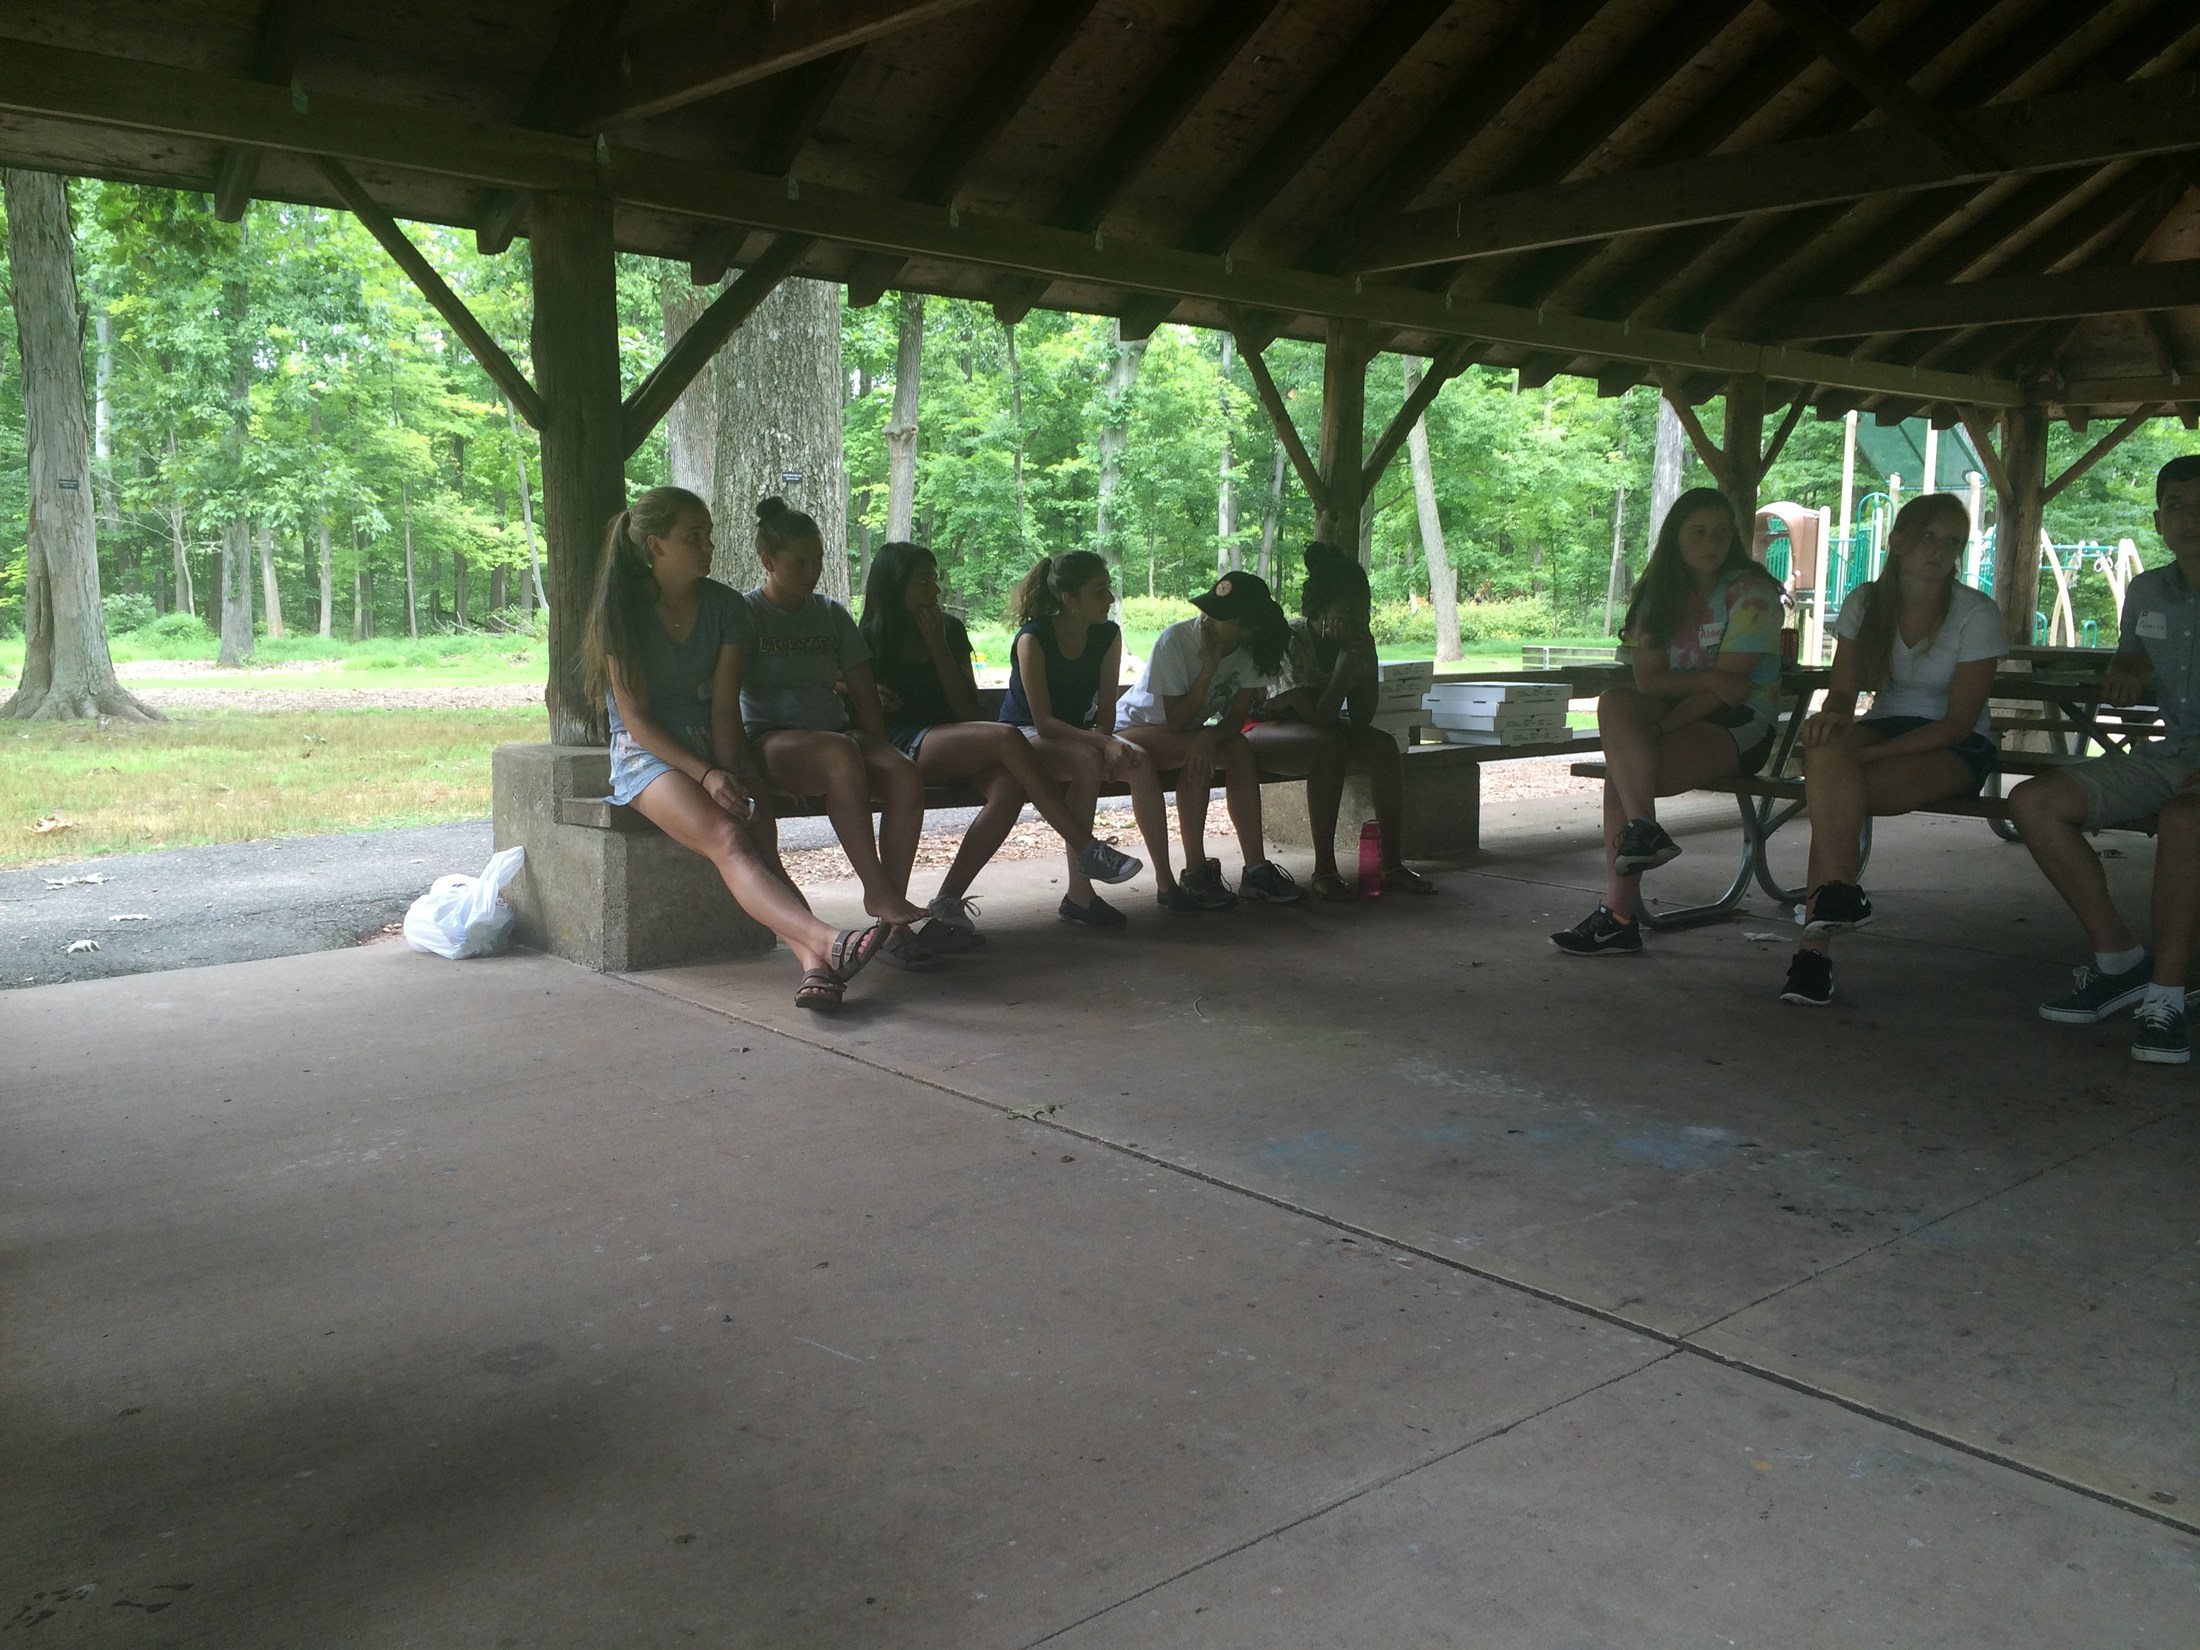 Council members gather at a picnic shelter